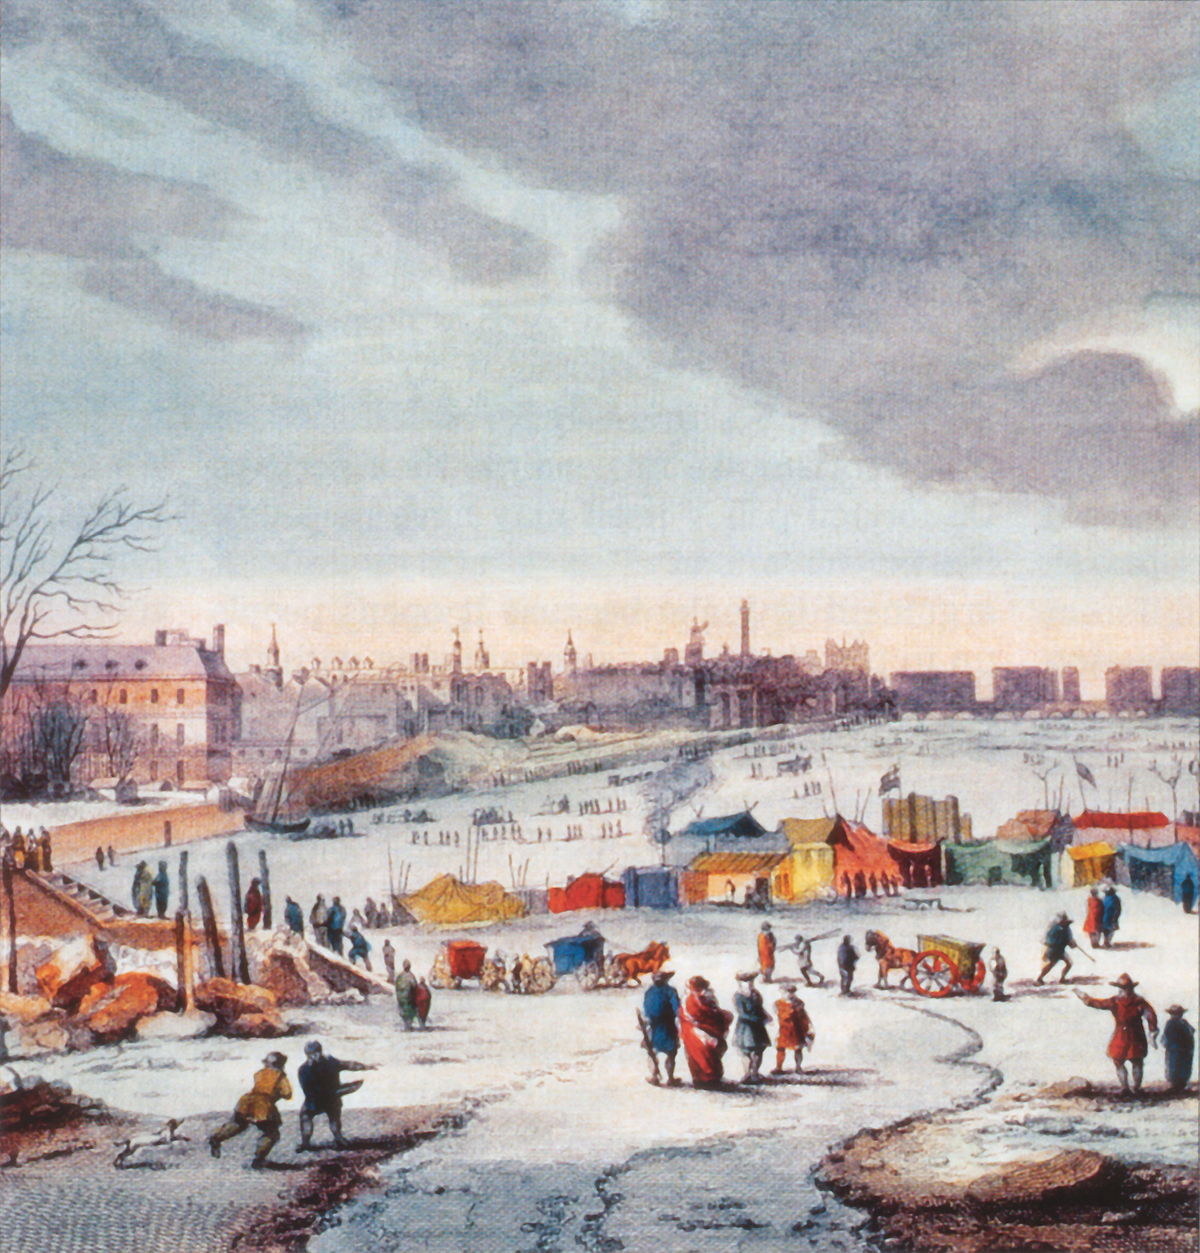 River Thames frost fairs - Wikipedia